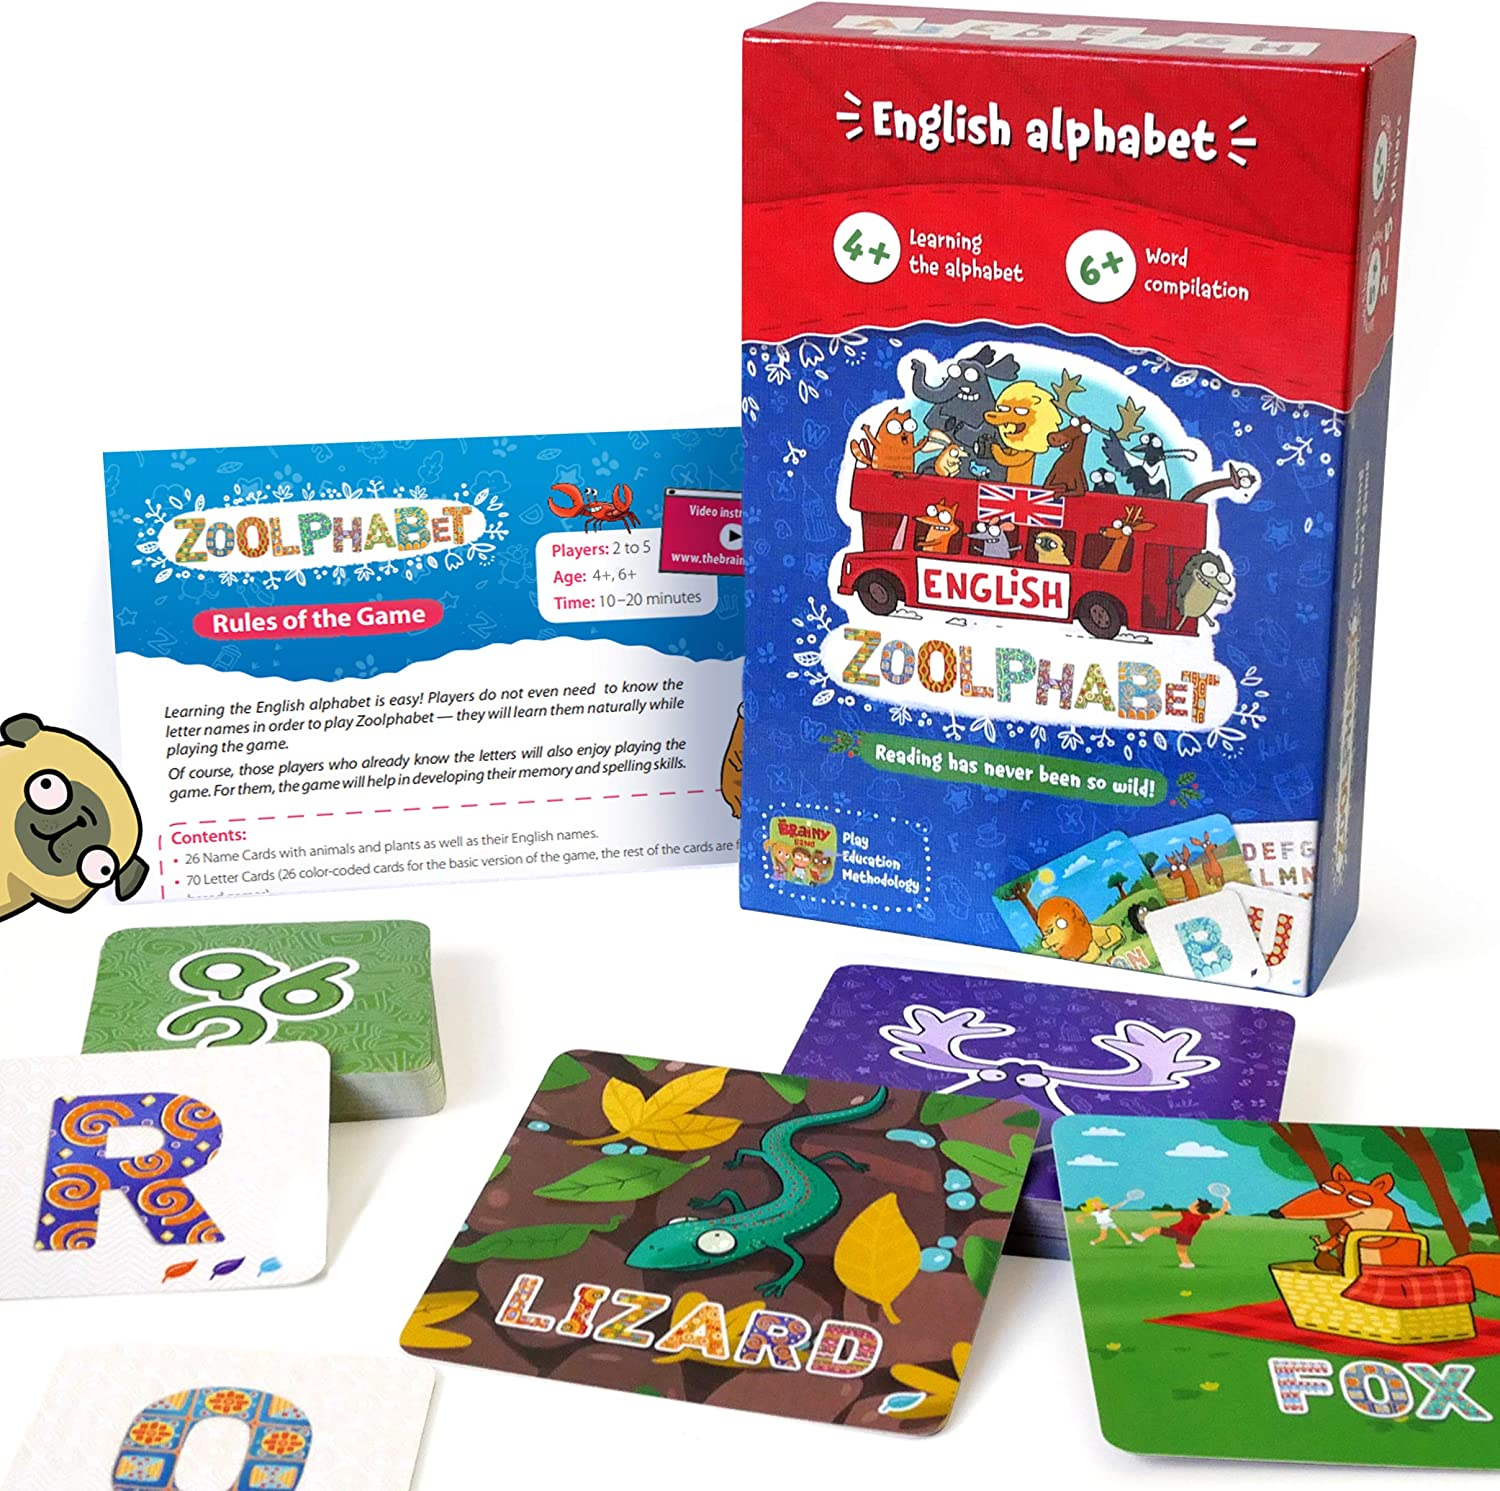 Alphabet Reading Memory Educational Family Board Games for Kids 4 and up 30% OFF £11.89 @ Amazon